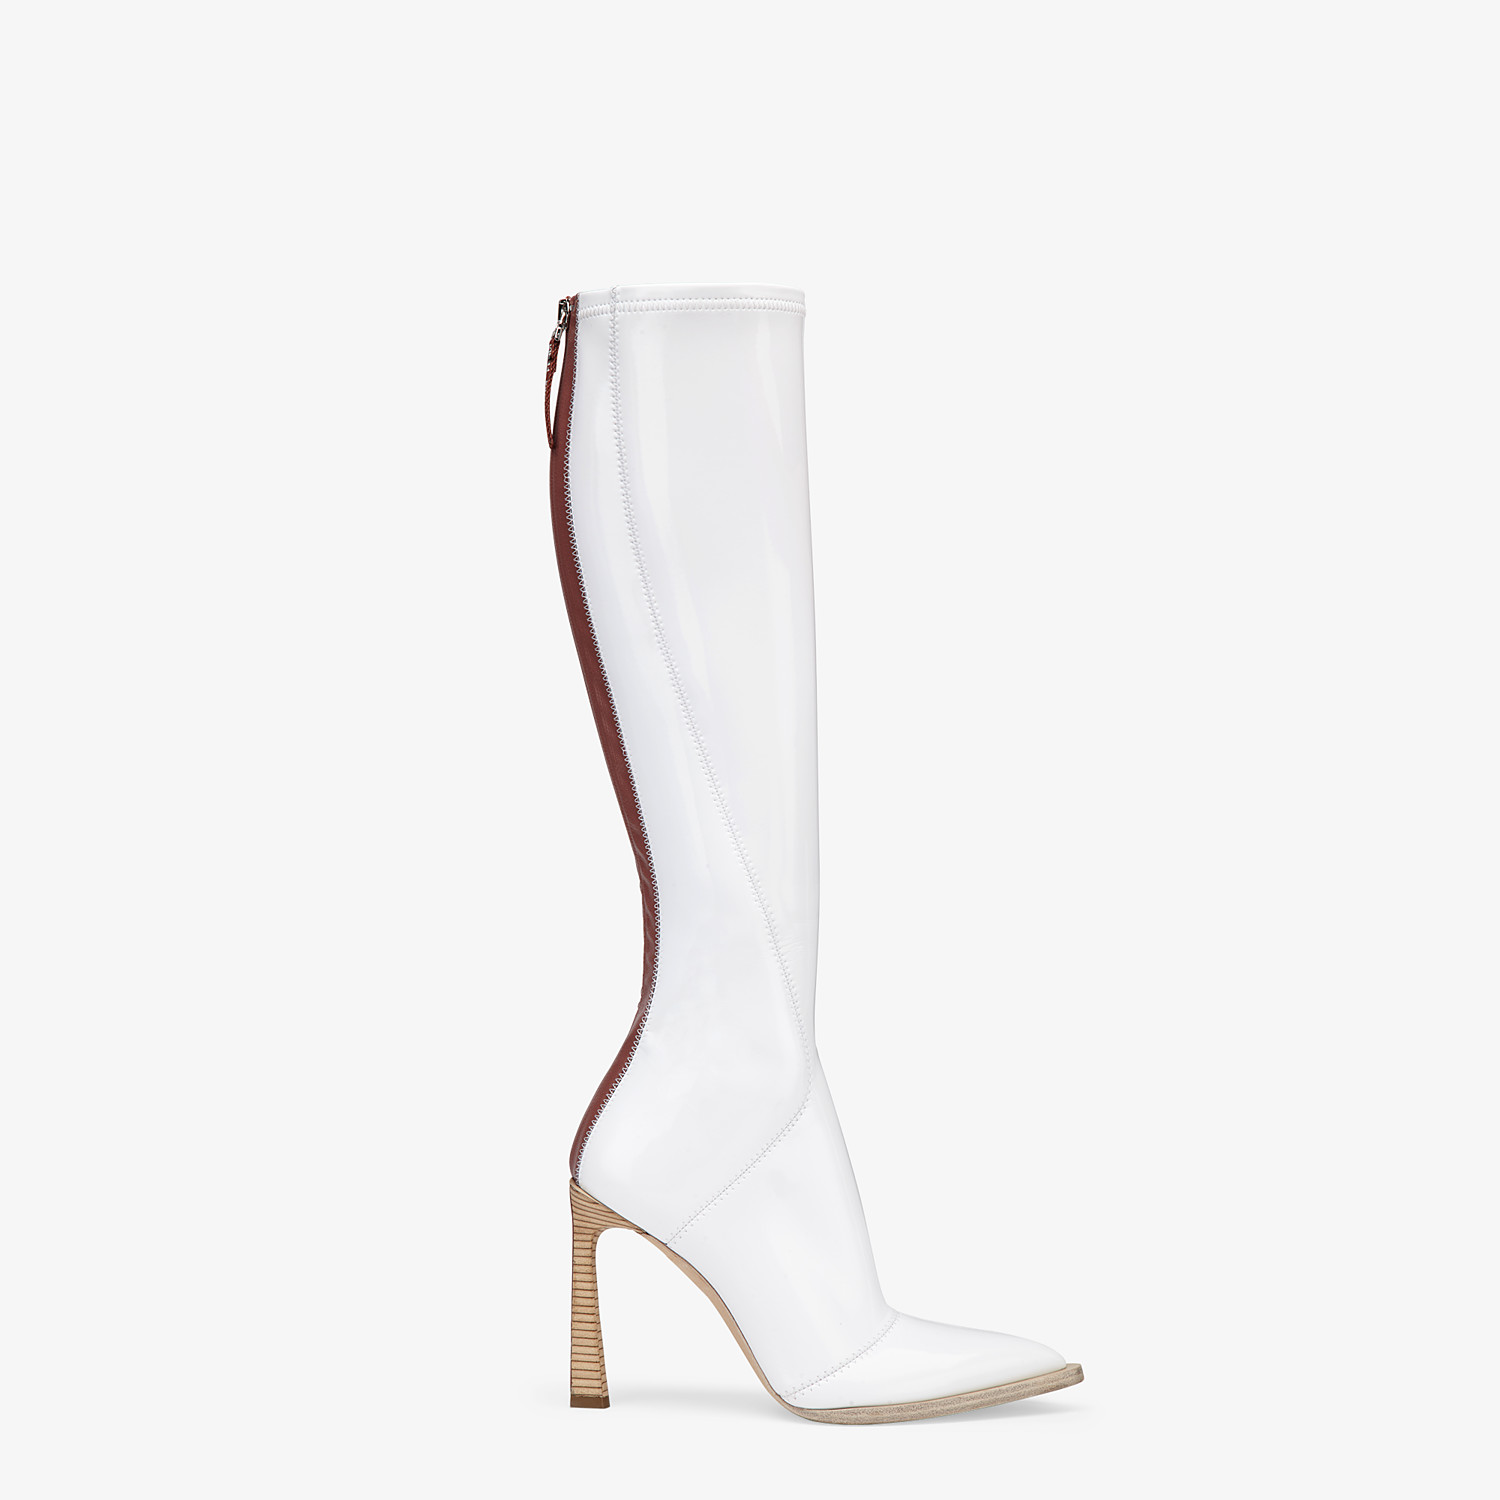 FENDI BOOTS - Boot in glossy white neoprene - view 1 detail